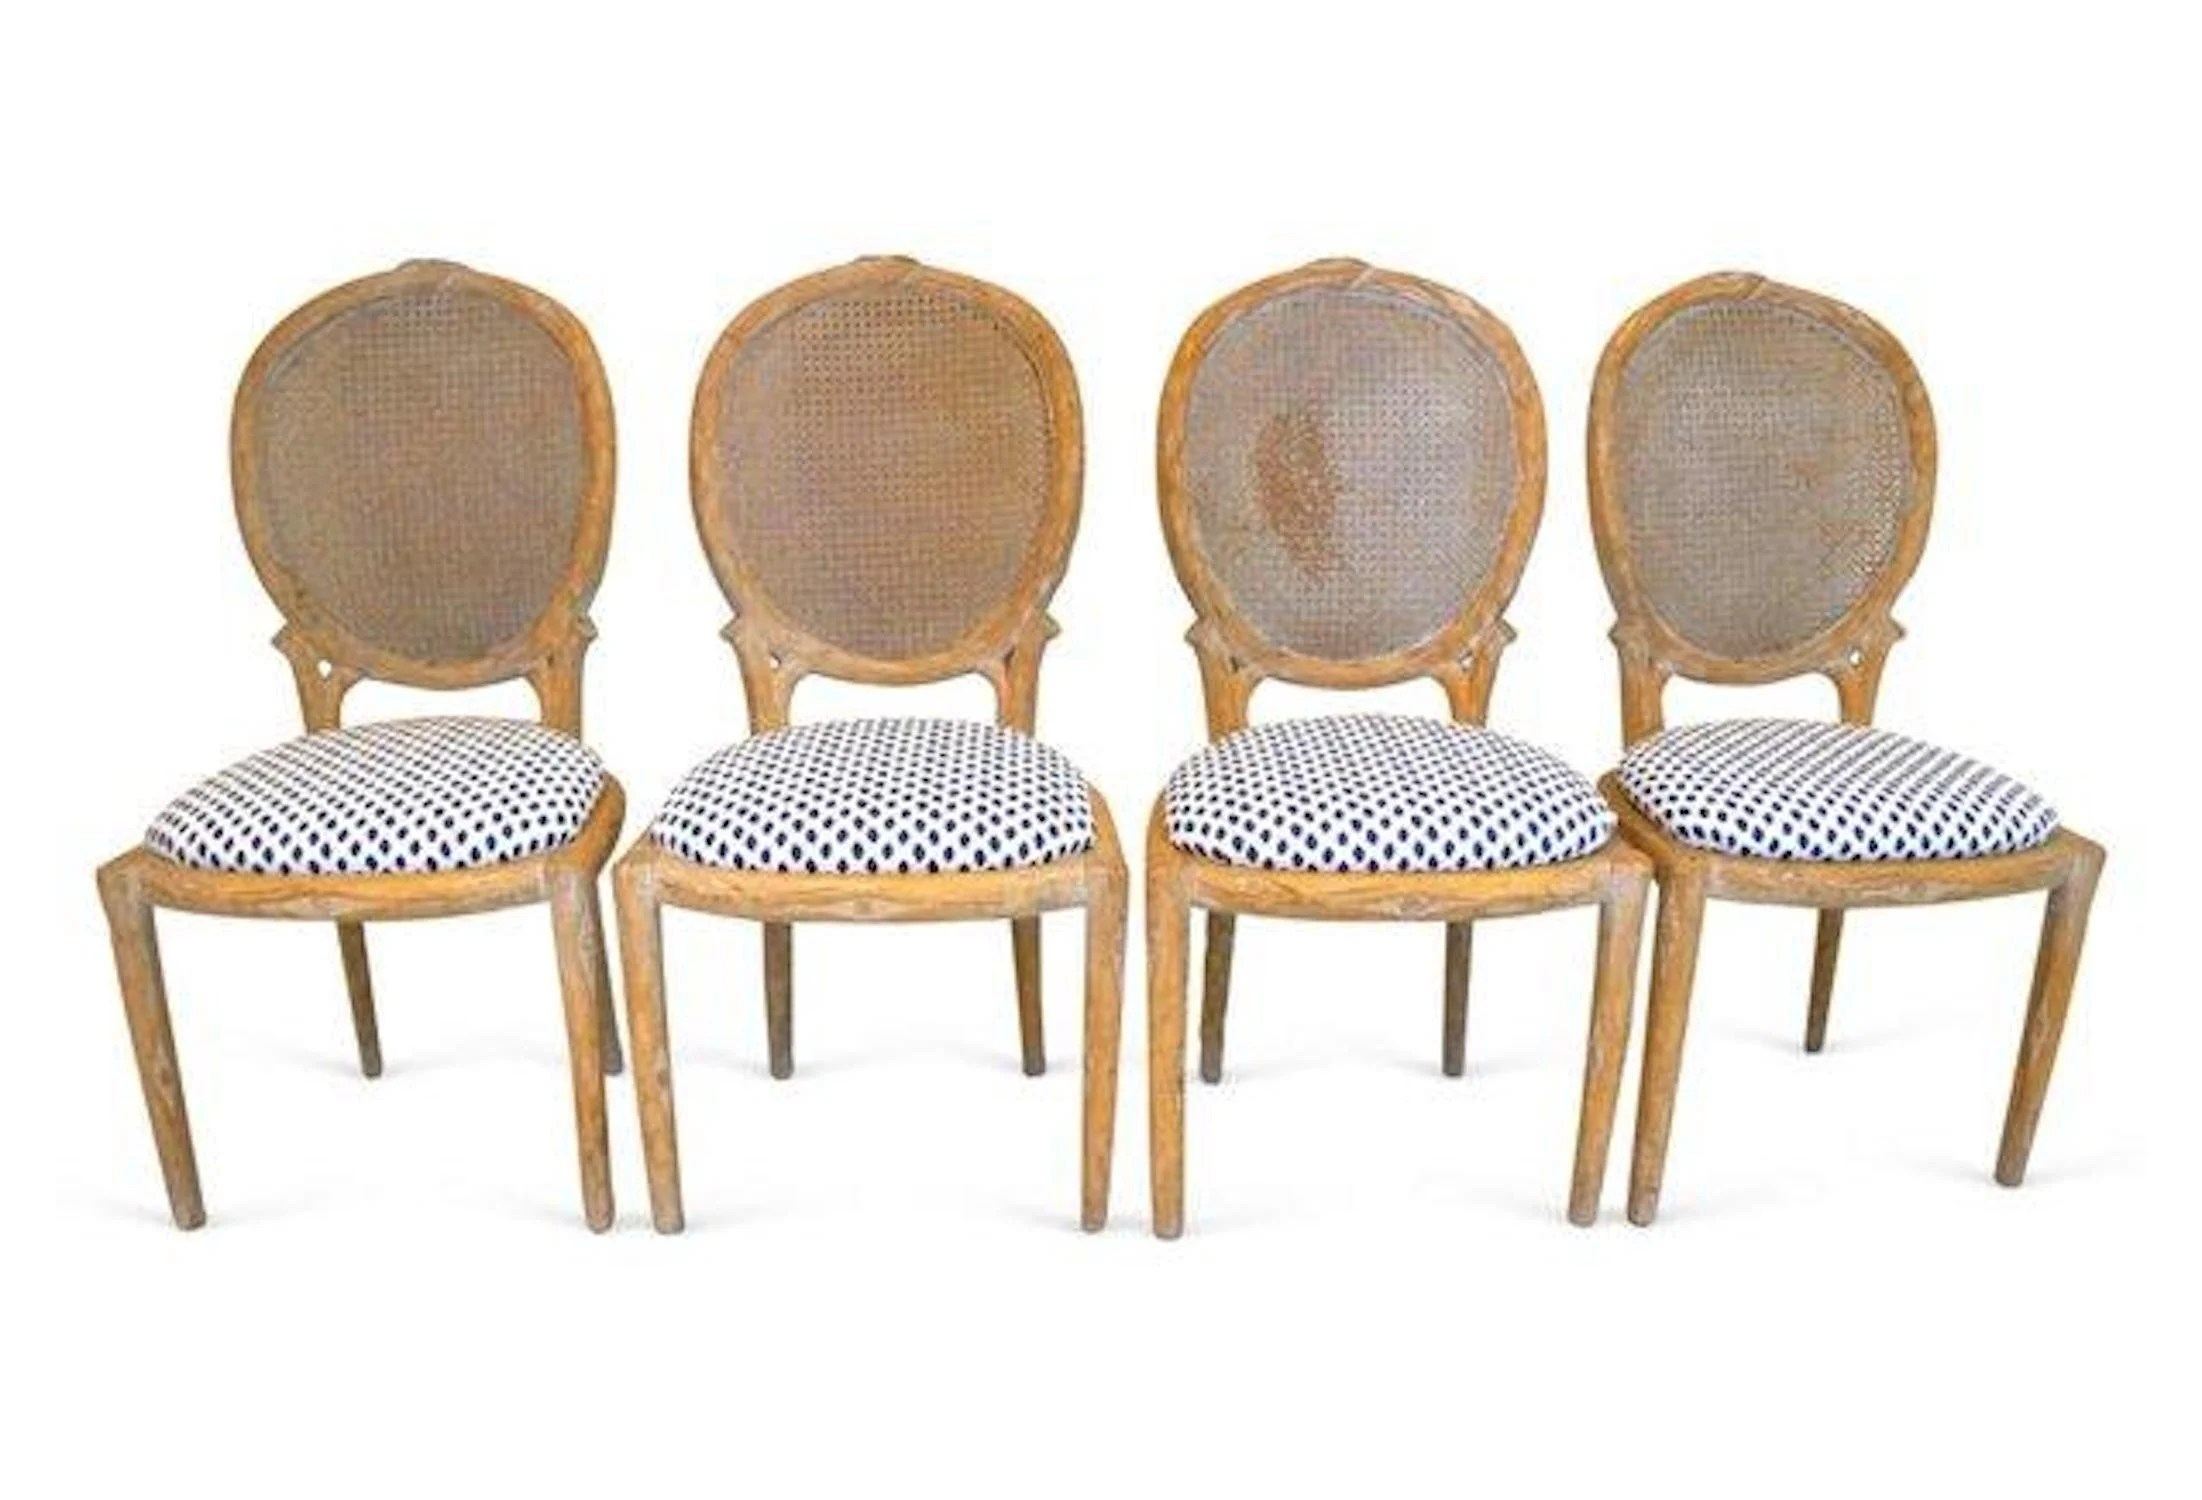 vintage wooden dining chairs chair cover rentals in richmond va etsy 70s 80s 4 faux bois carved wood spain hollywood regency 1970s 1980s